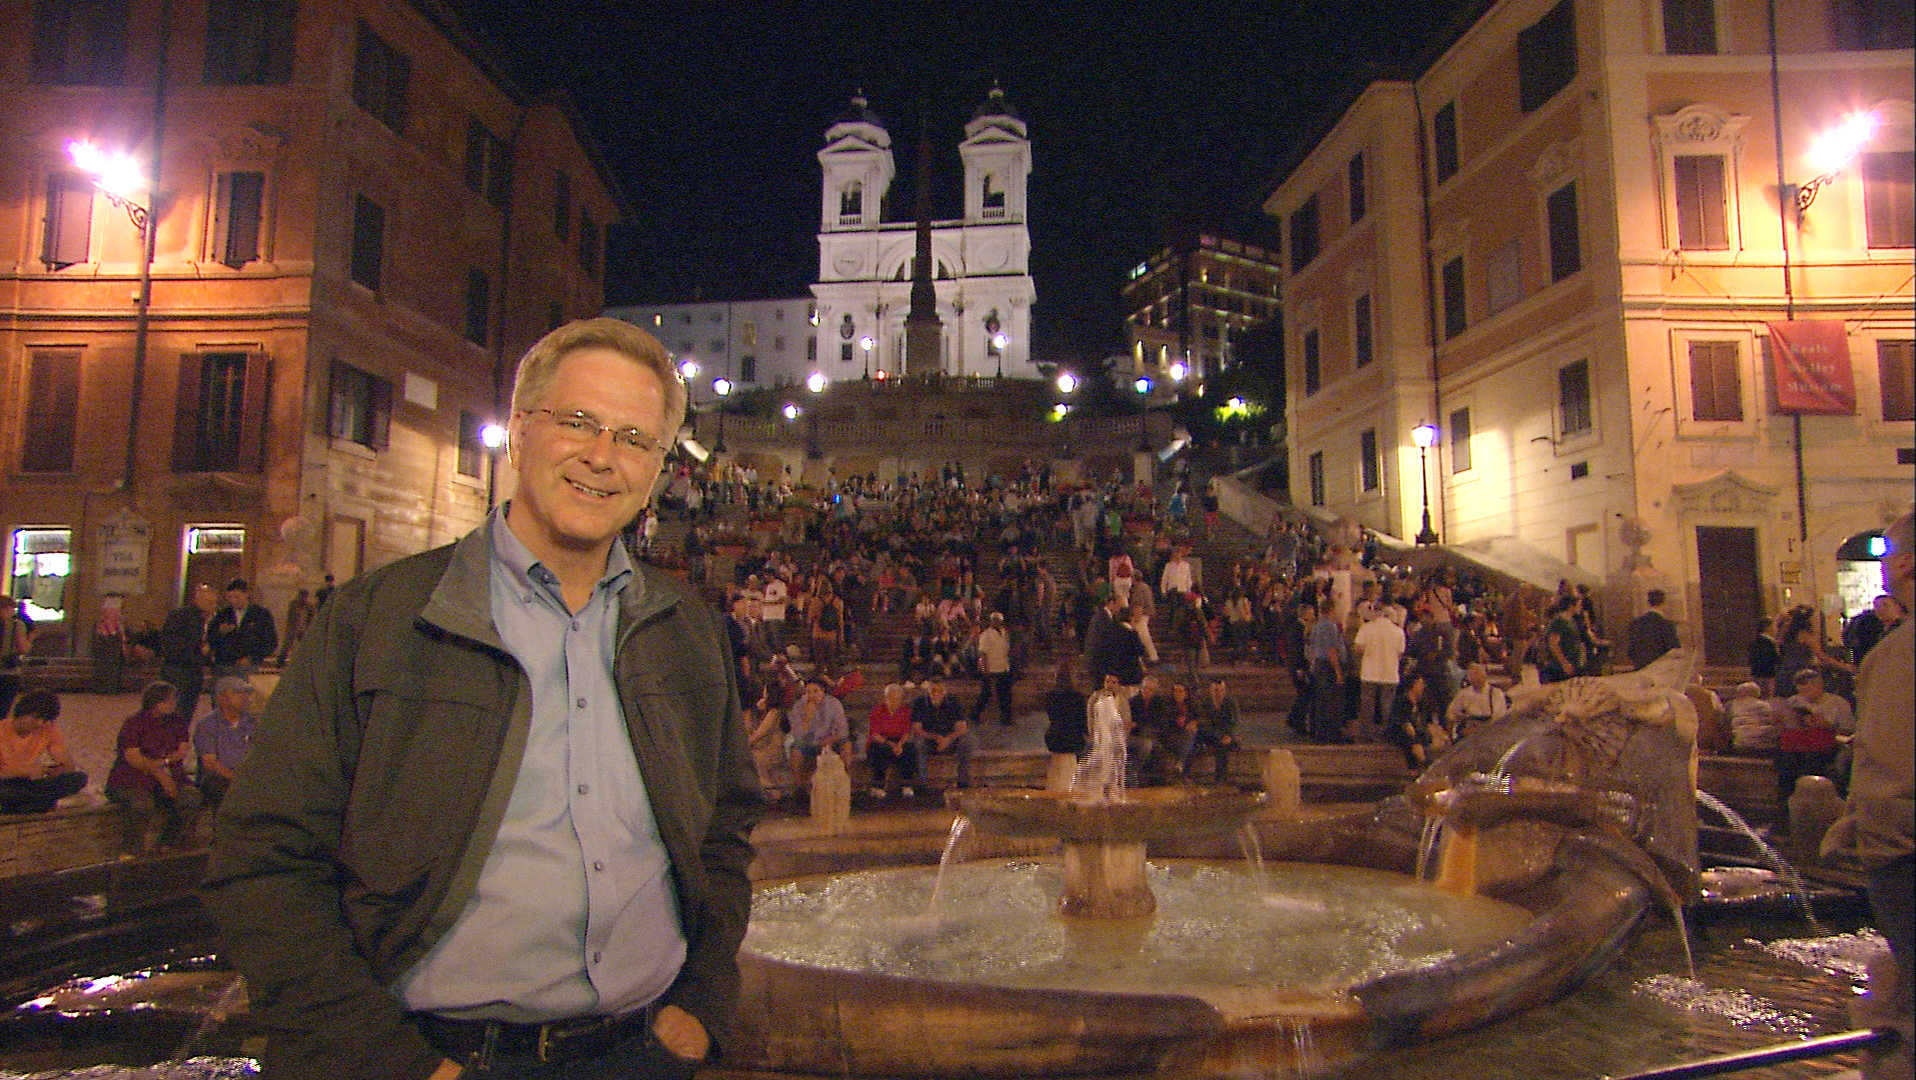 Rick at the Spanish Steps